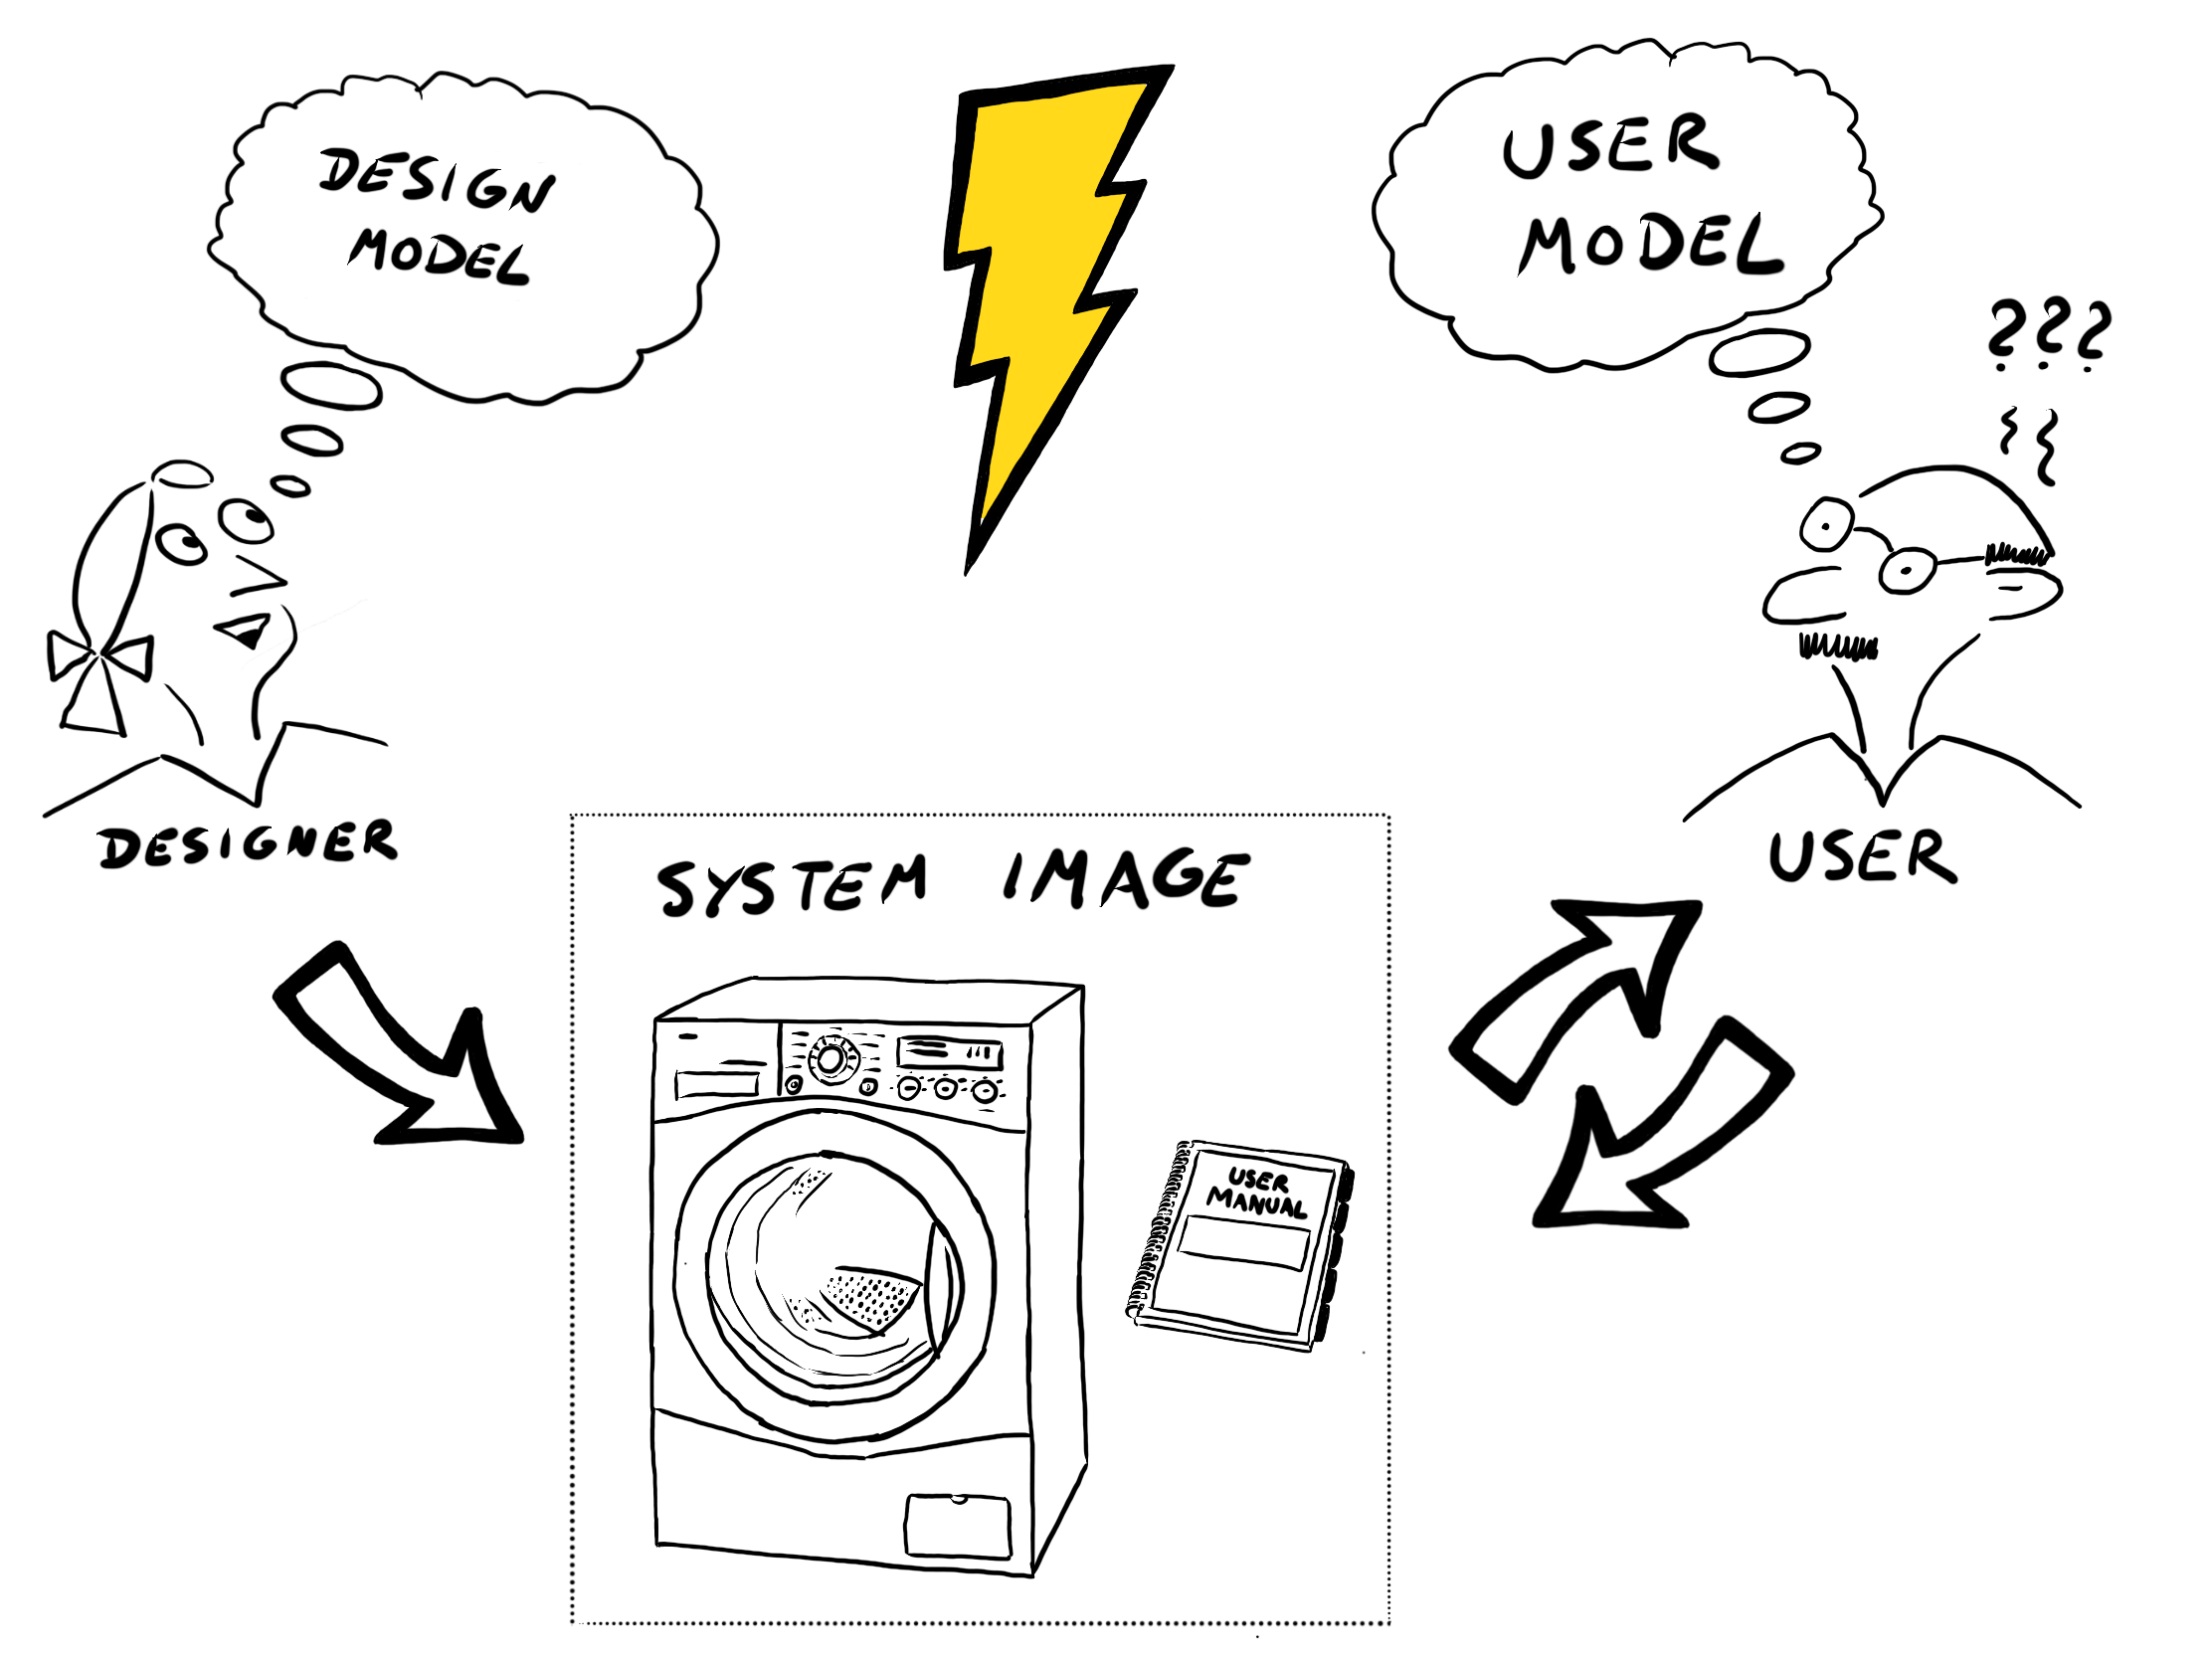 The user's mental model is not identical with the product designer's mental model. Graphic adopted from The Design of Everyday Things by Don Norman.